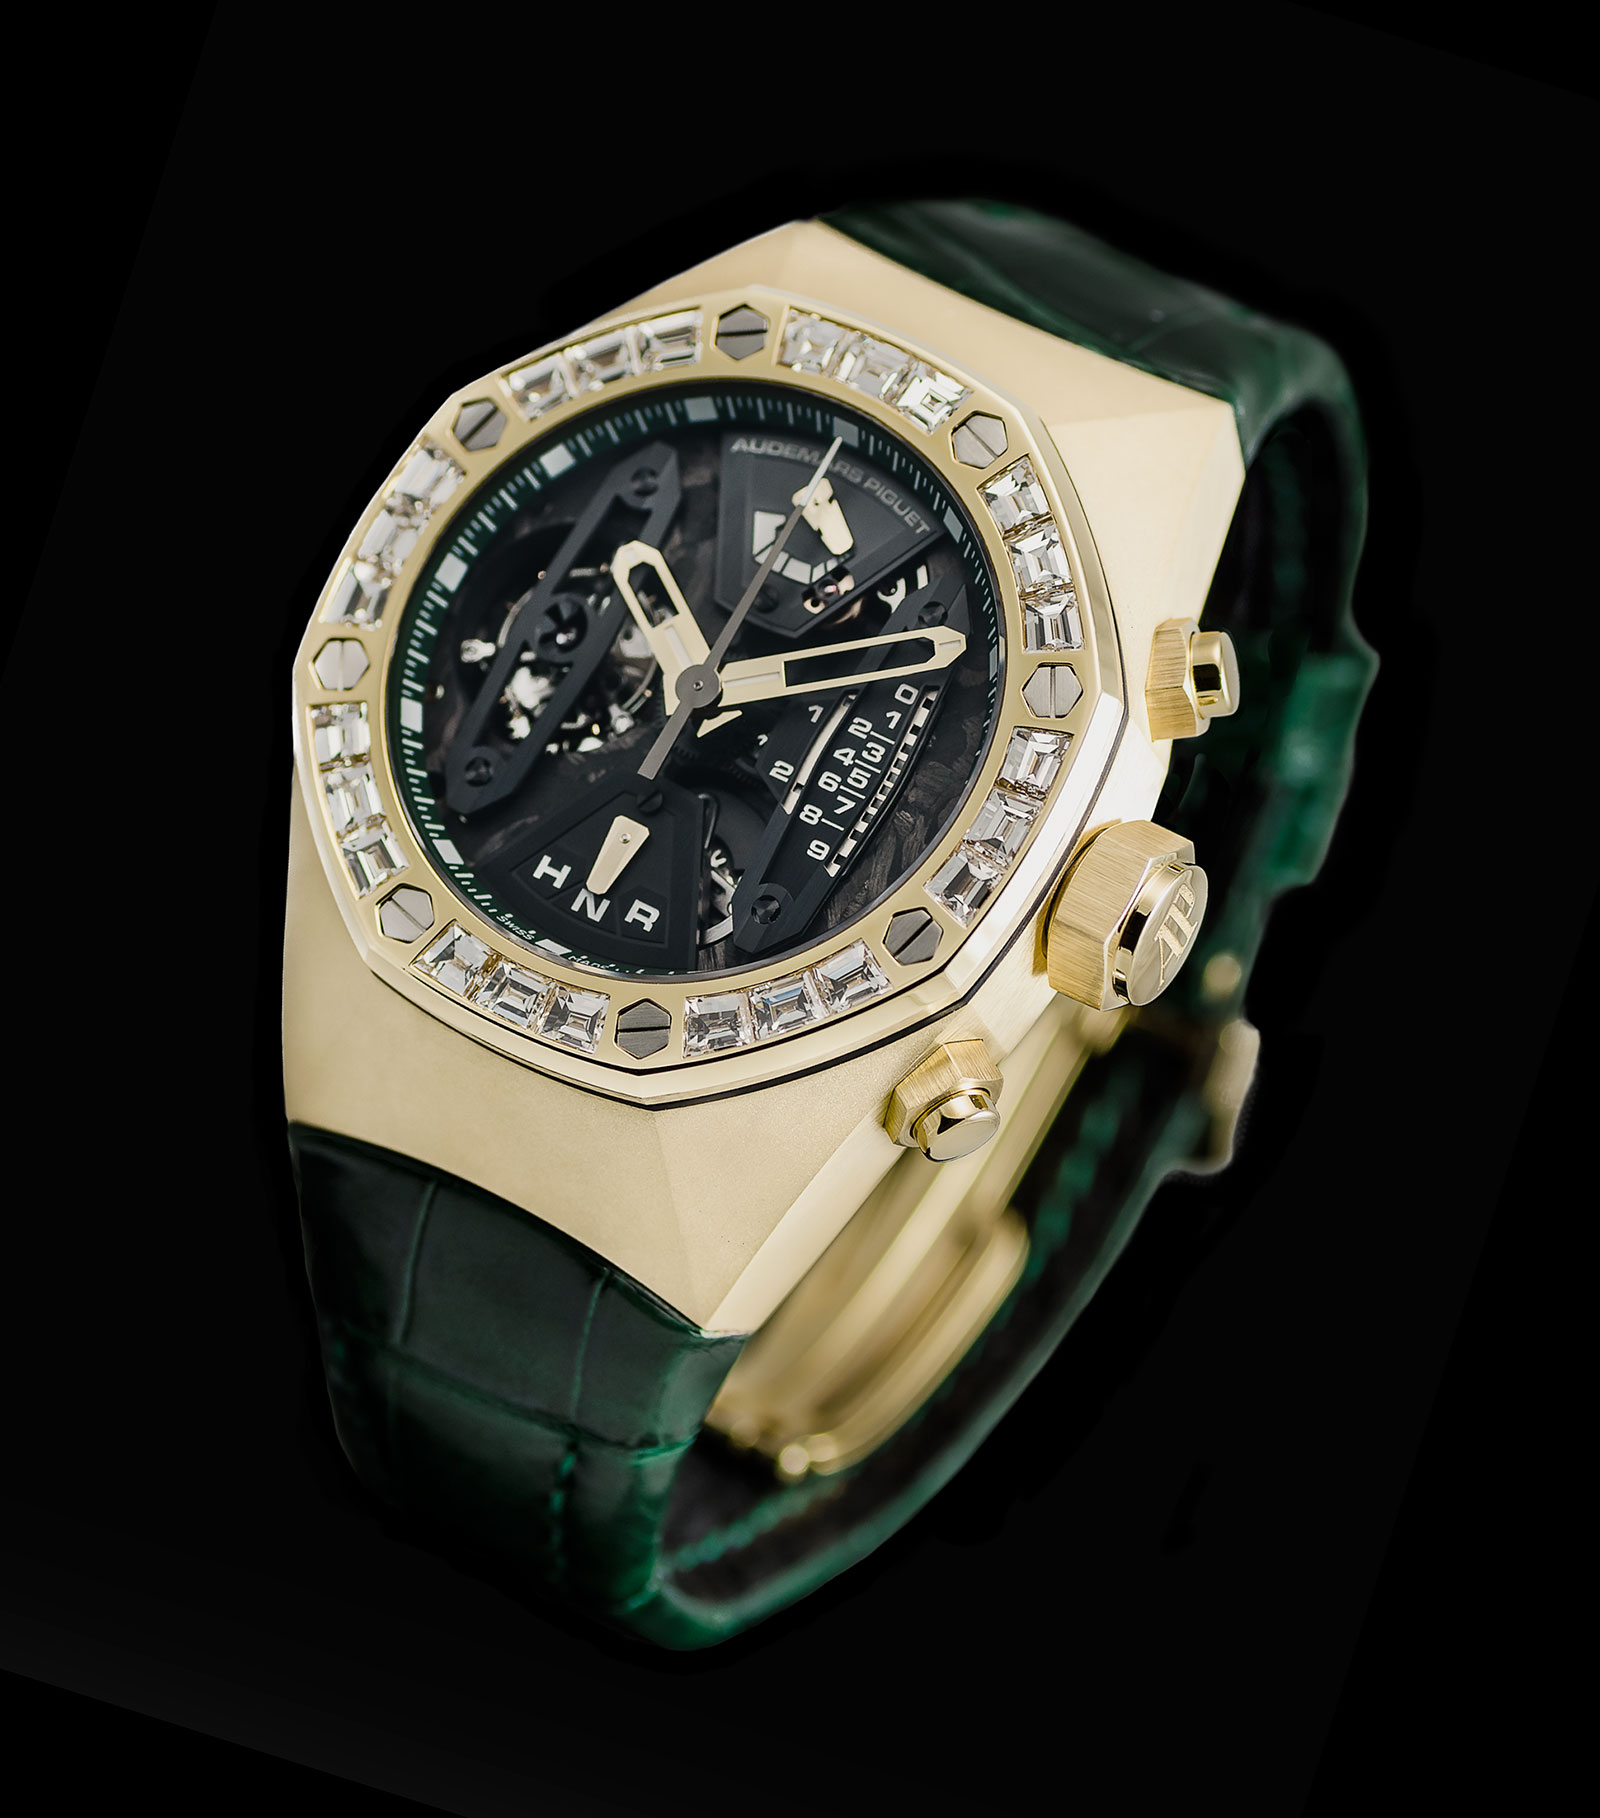 Audemars Piguet Royal Oak Concept Tourbillon Chronograph yellow gold THG 1